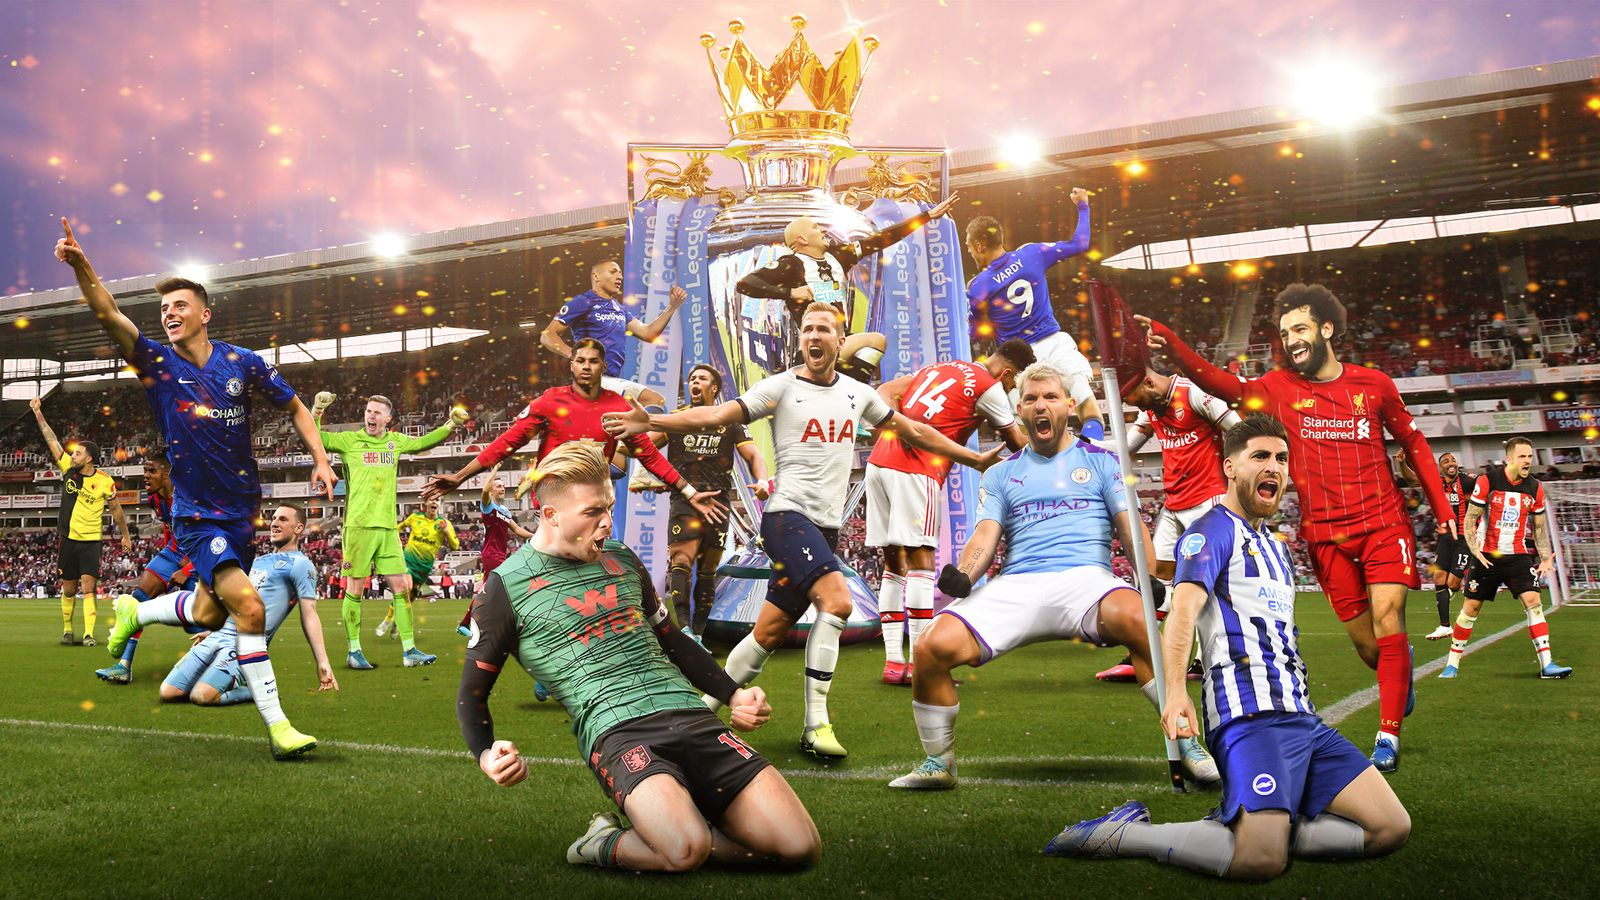 Premier League Return The State Of Play As Football Prepares To Return Football News Sky Sports